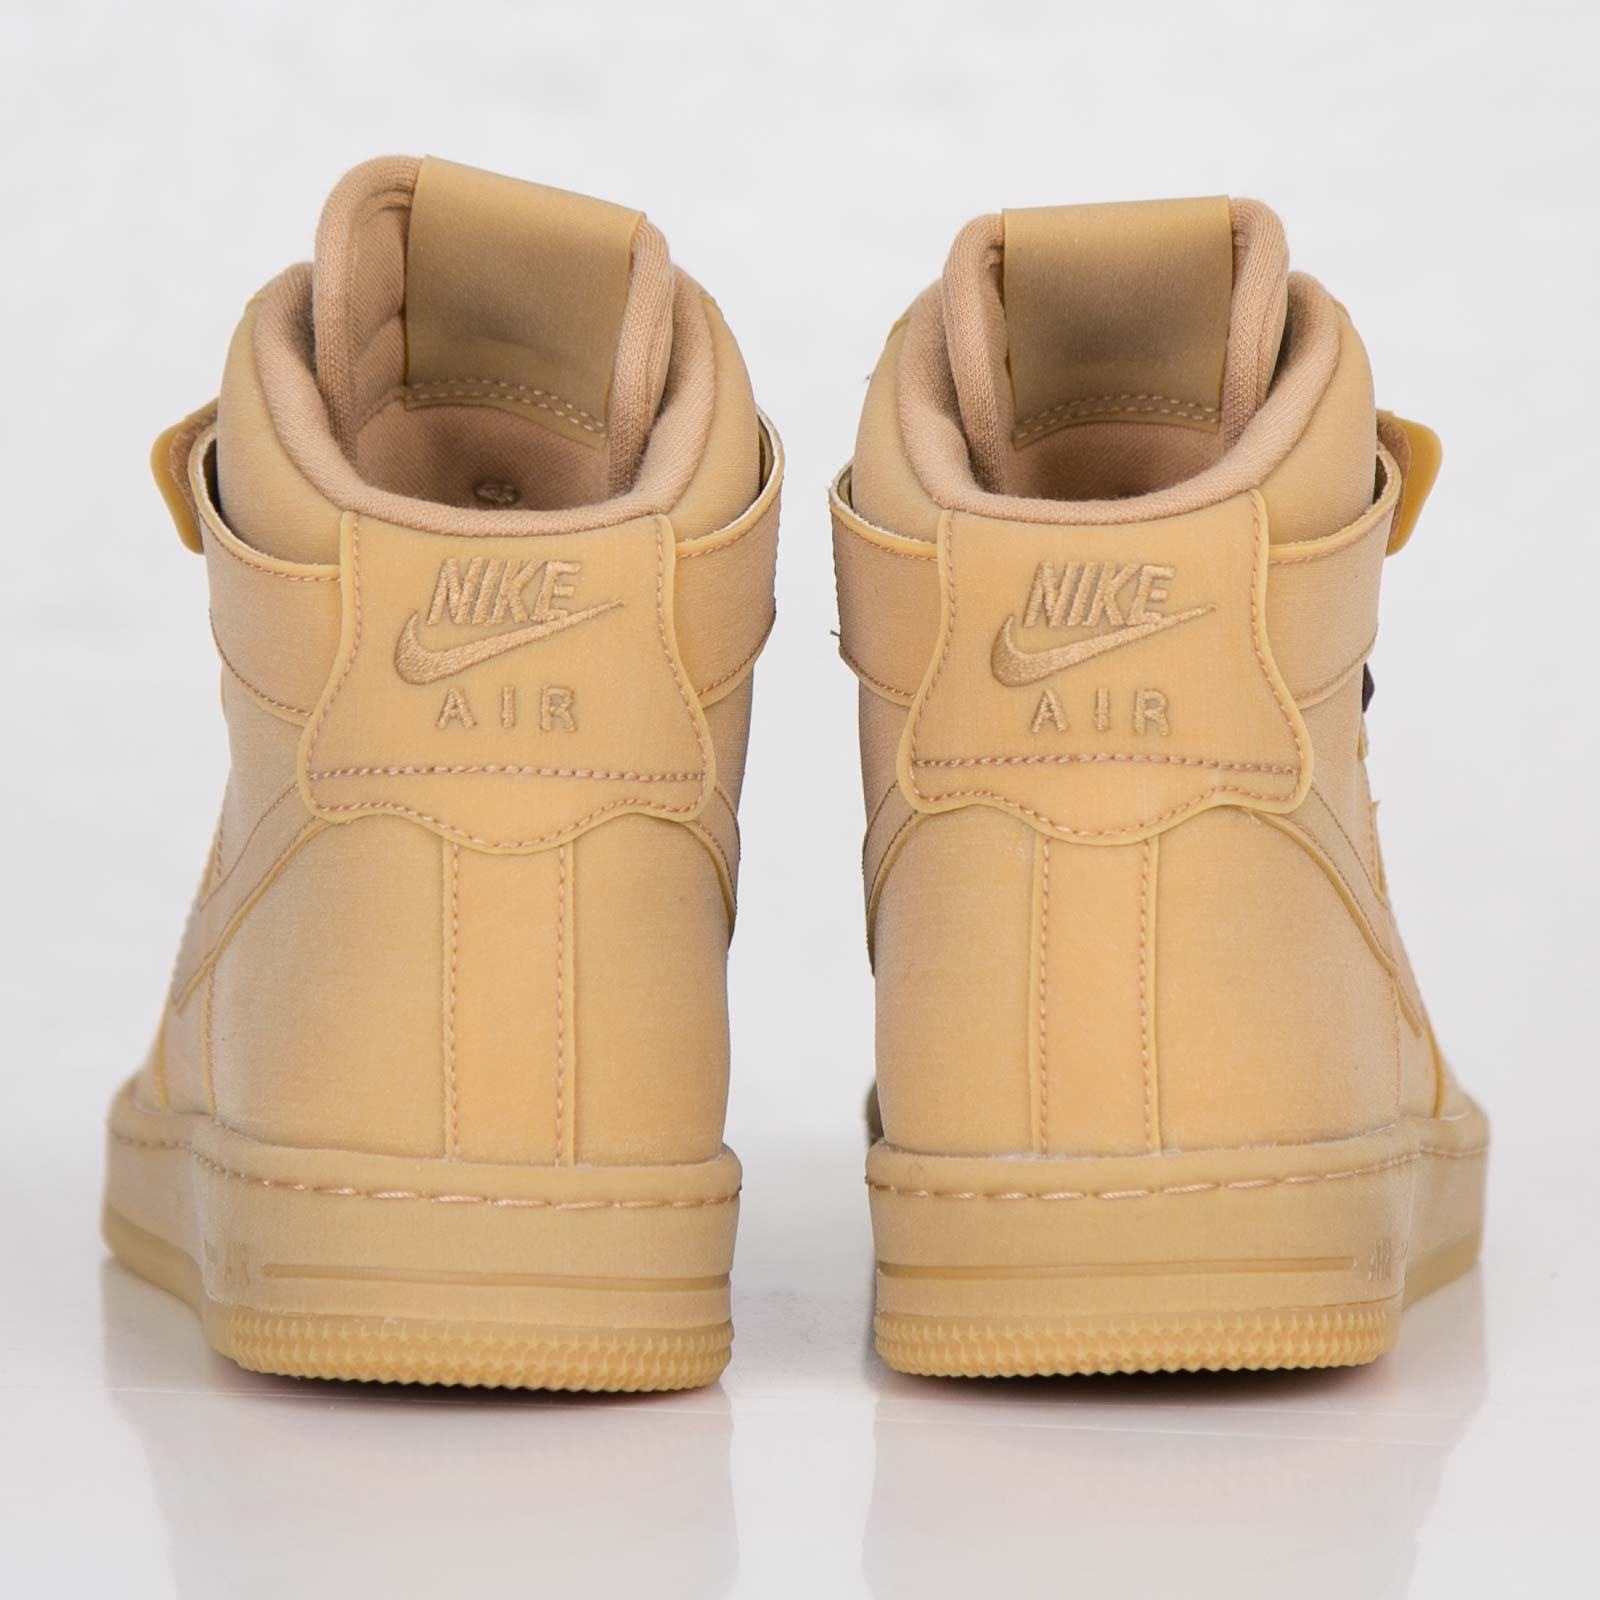 competitive price de7d6 07b0f Nike Air Force 1 Downtown Hi Gum LW QS - 638140-900 - Sneakersnstuff    sneakers   streetwear online since 1999